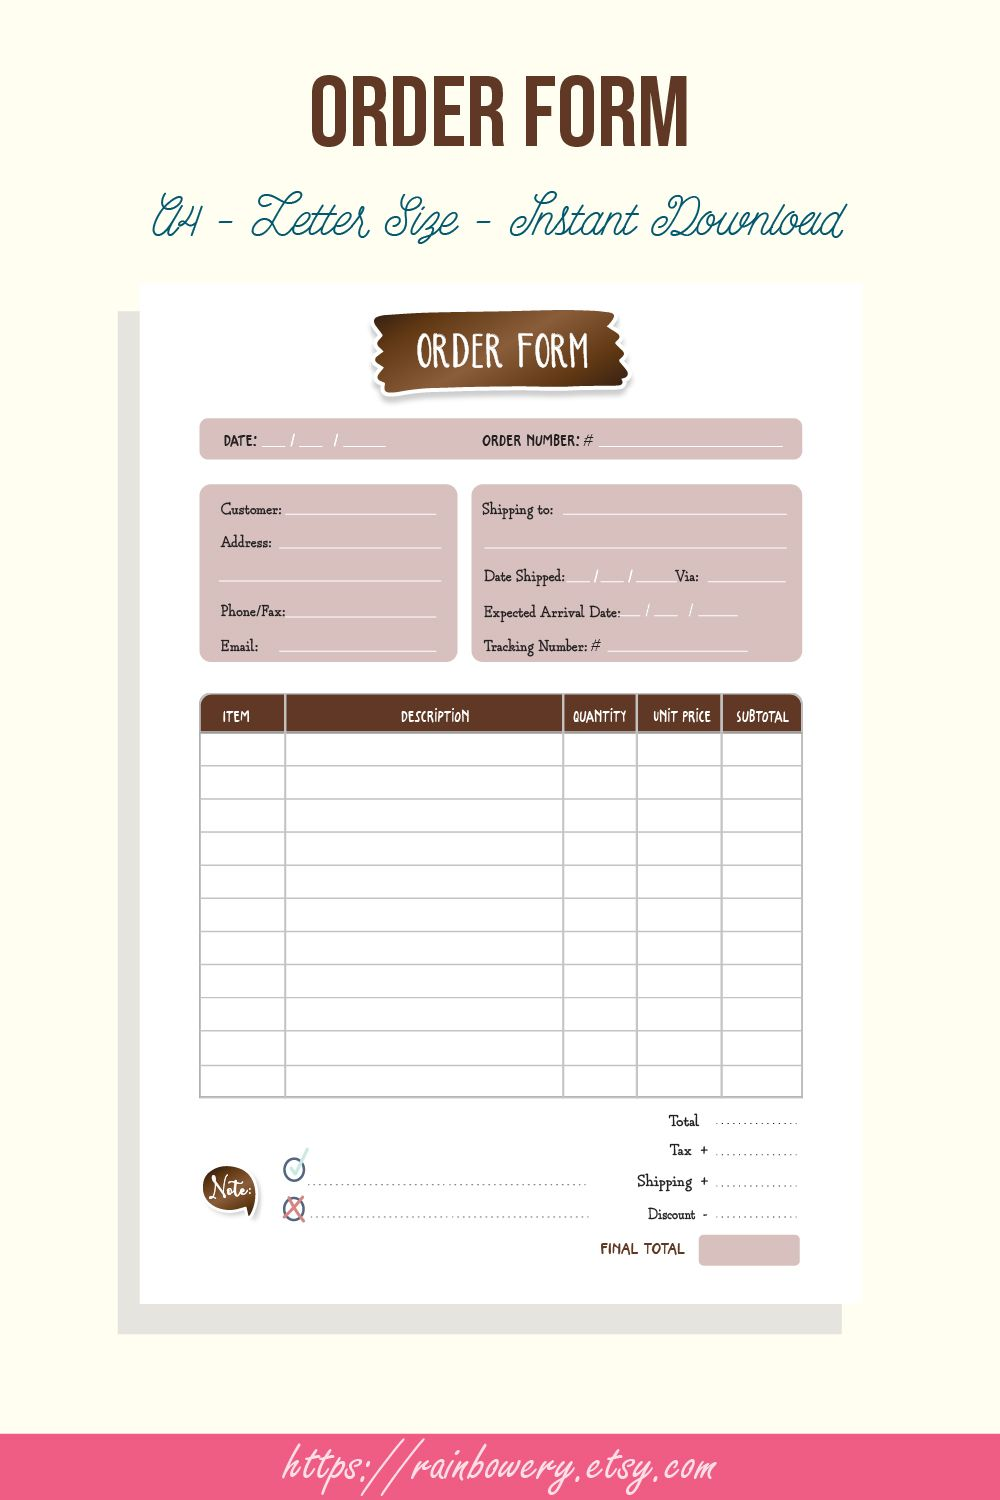 order form template printable  small business order form